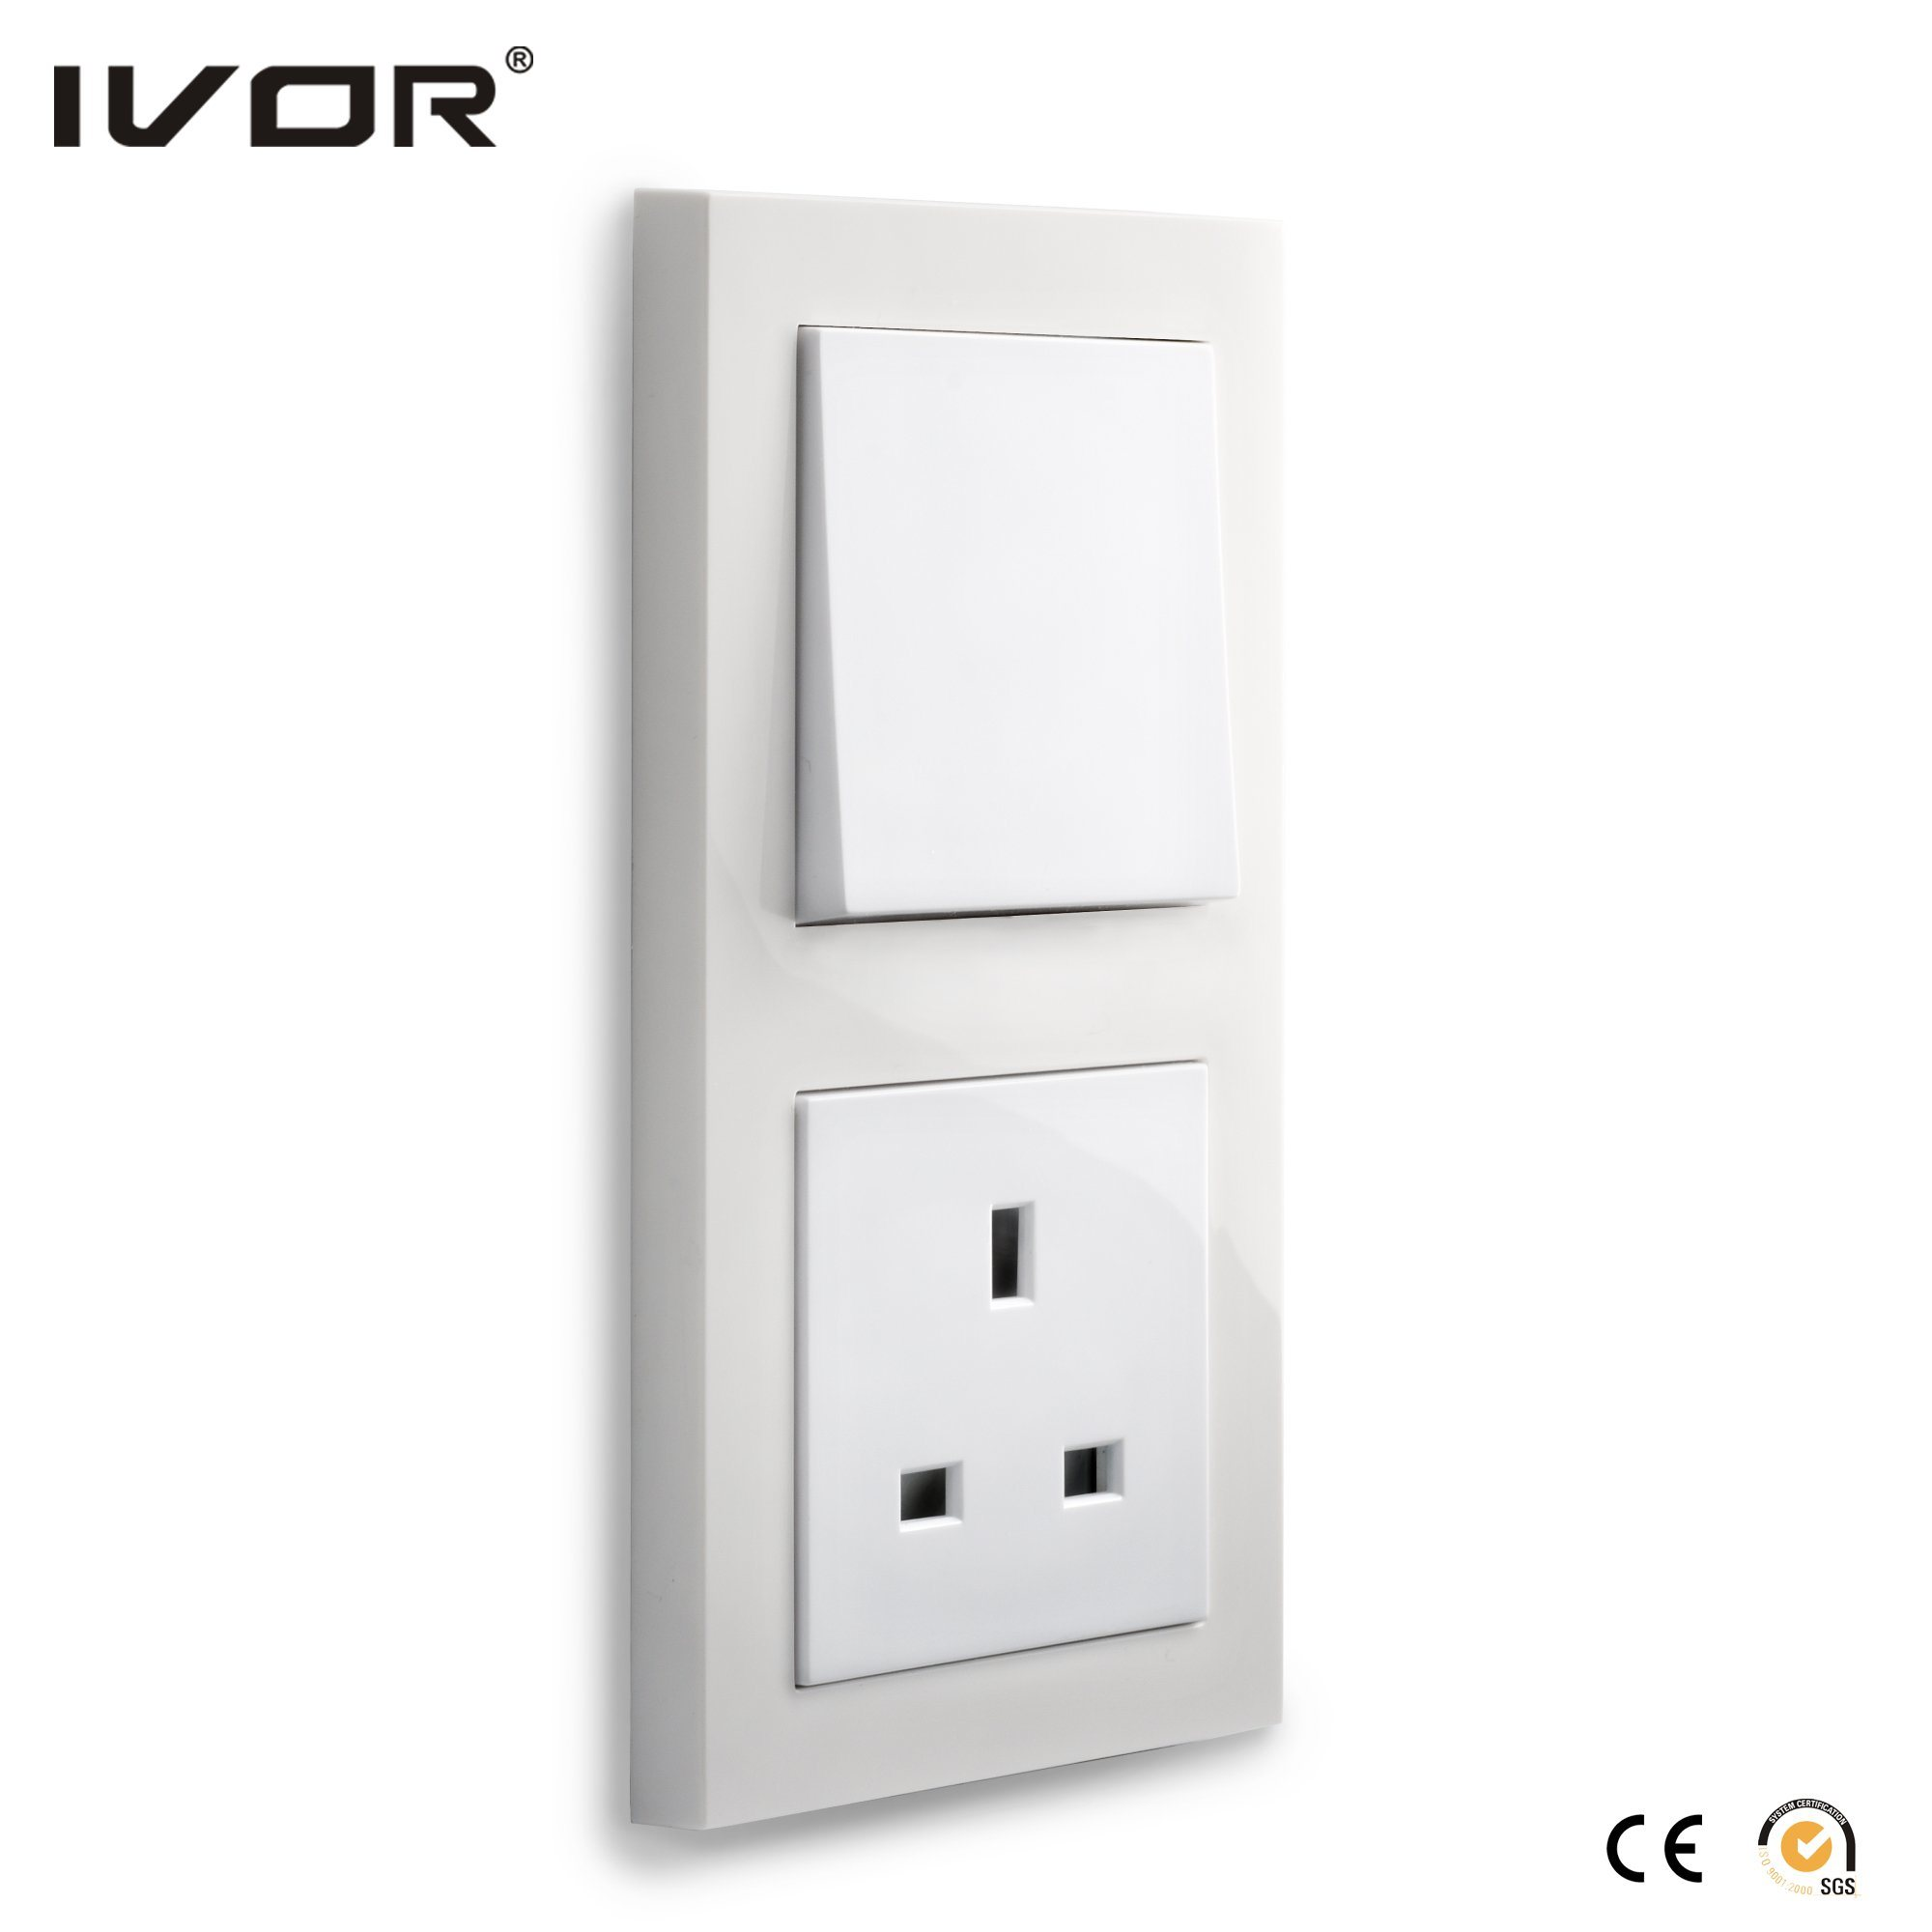 Mechanical Switch and Socket in Connect Version Different Outline Frame